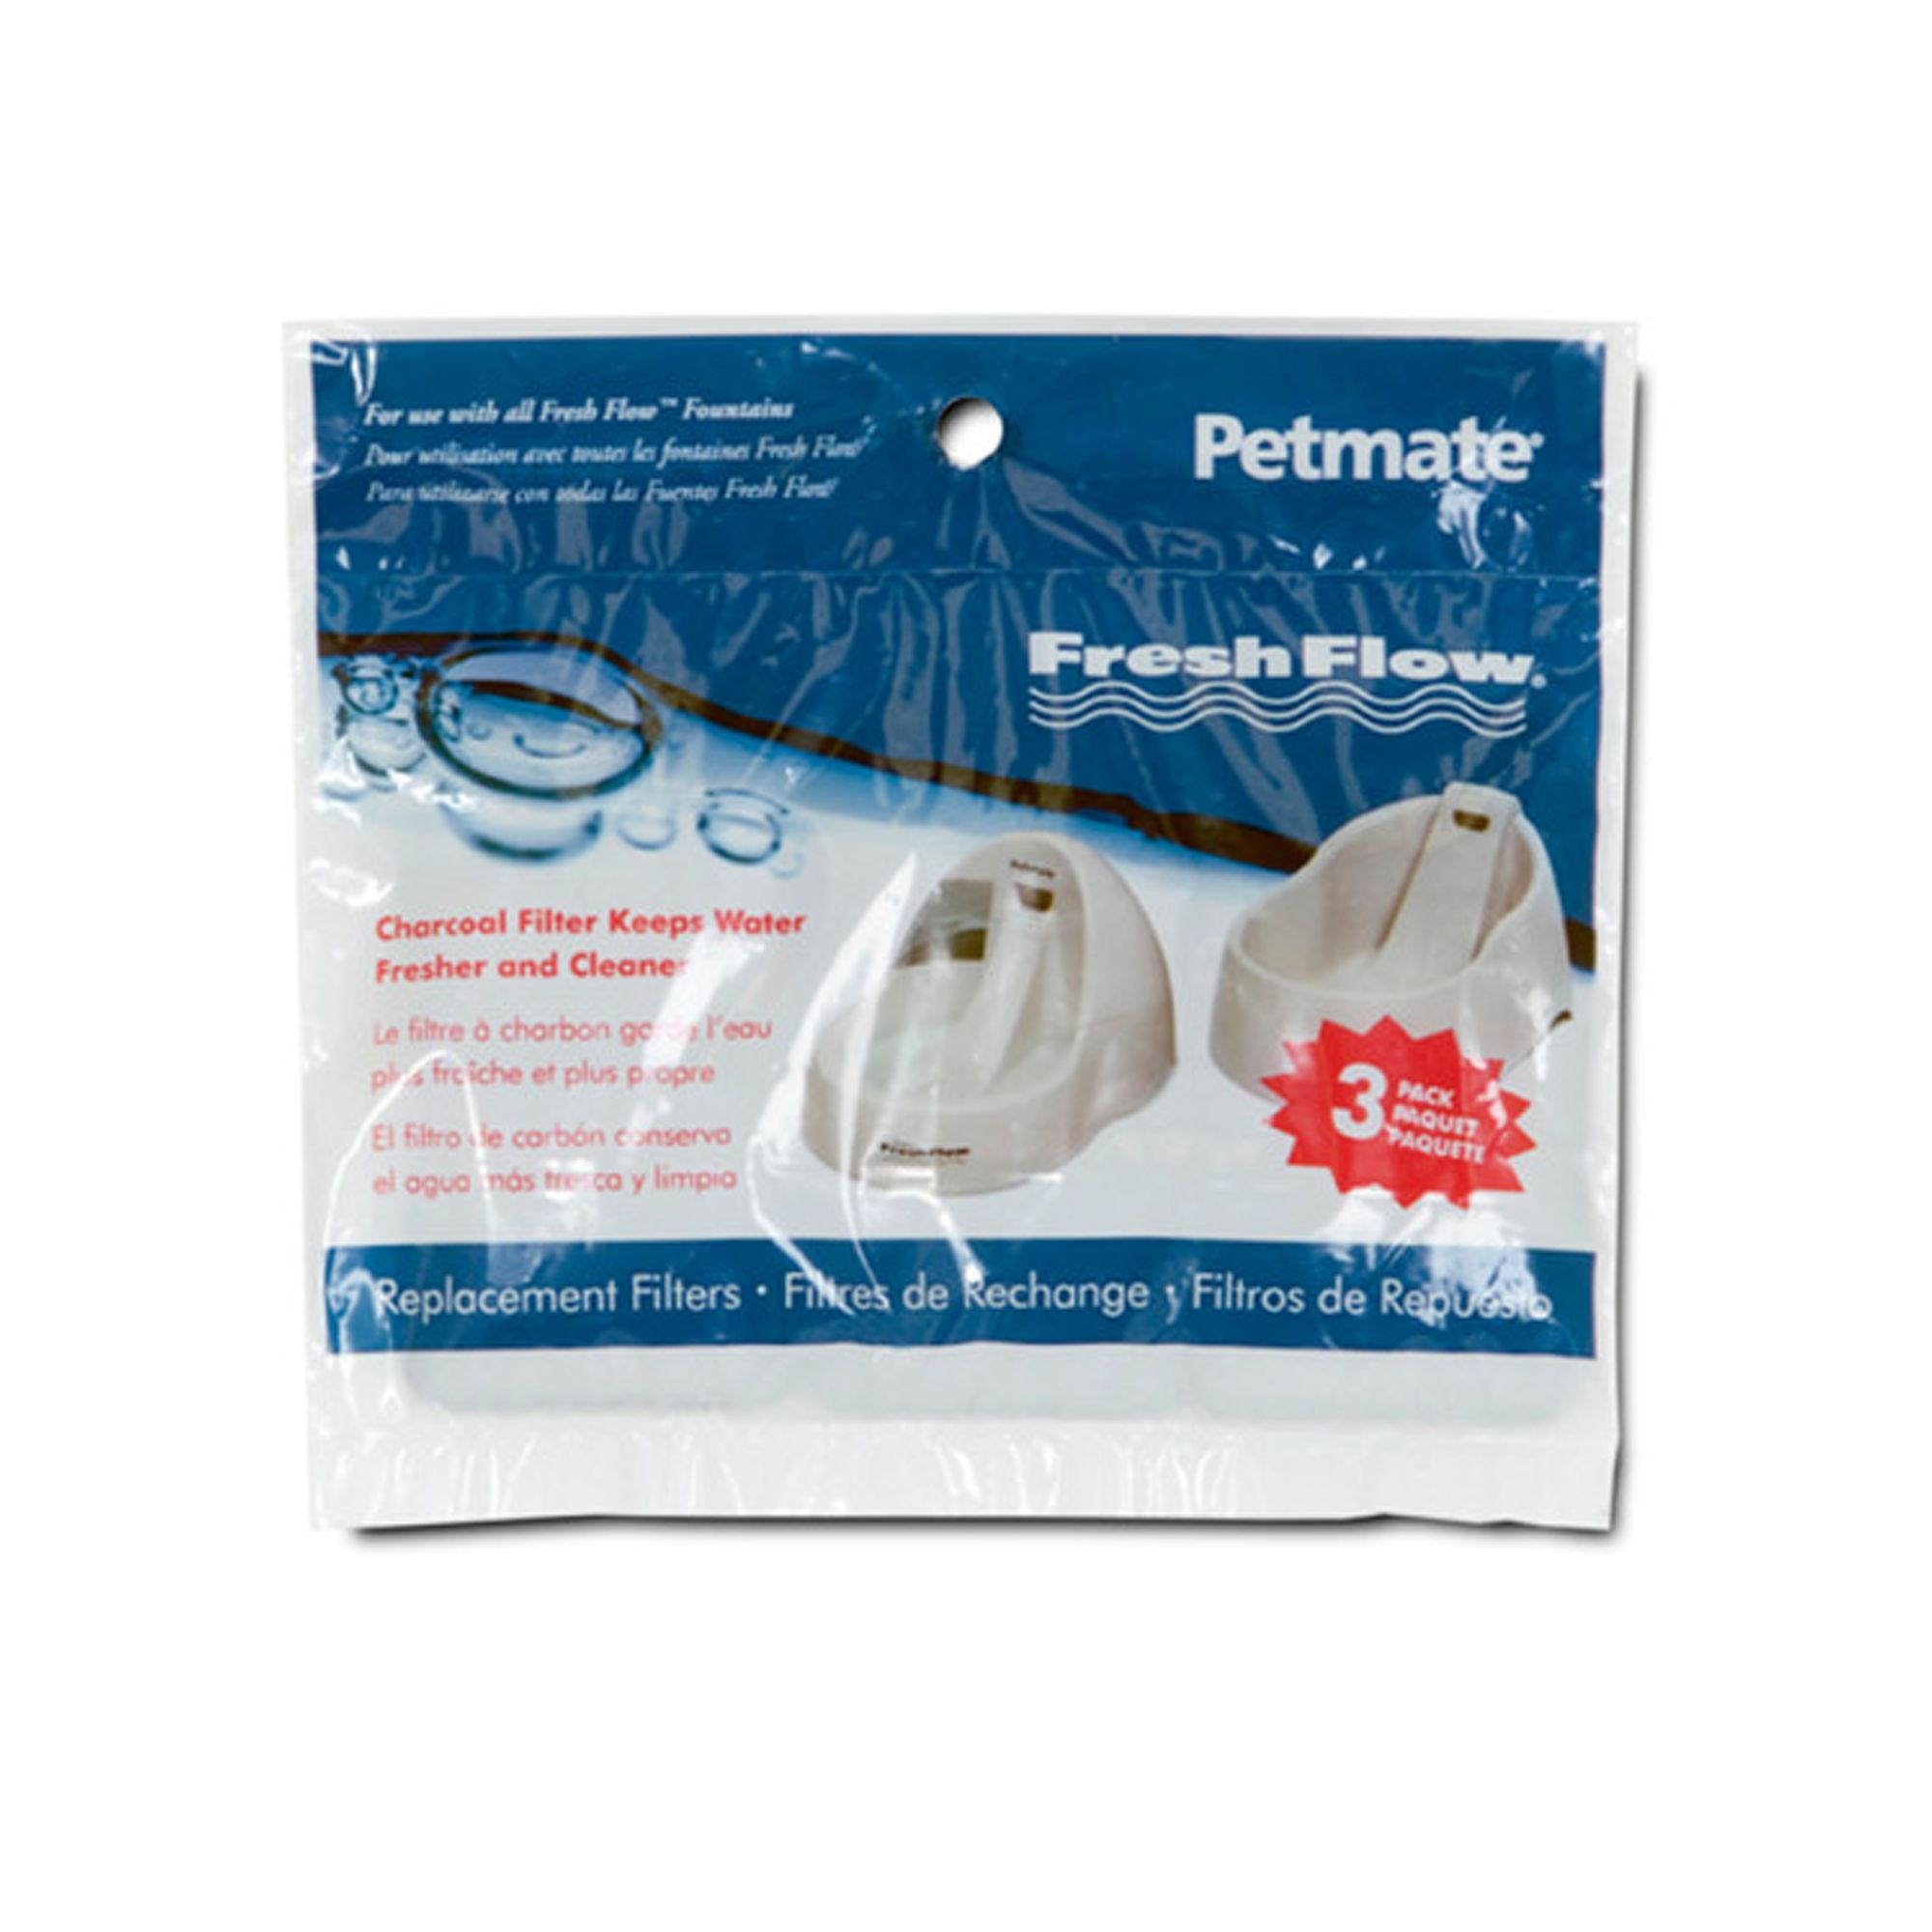 Petmate® Fresh Flow Pet Fountain Charcoal Replacement Filter size: 3 Count 5060247